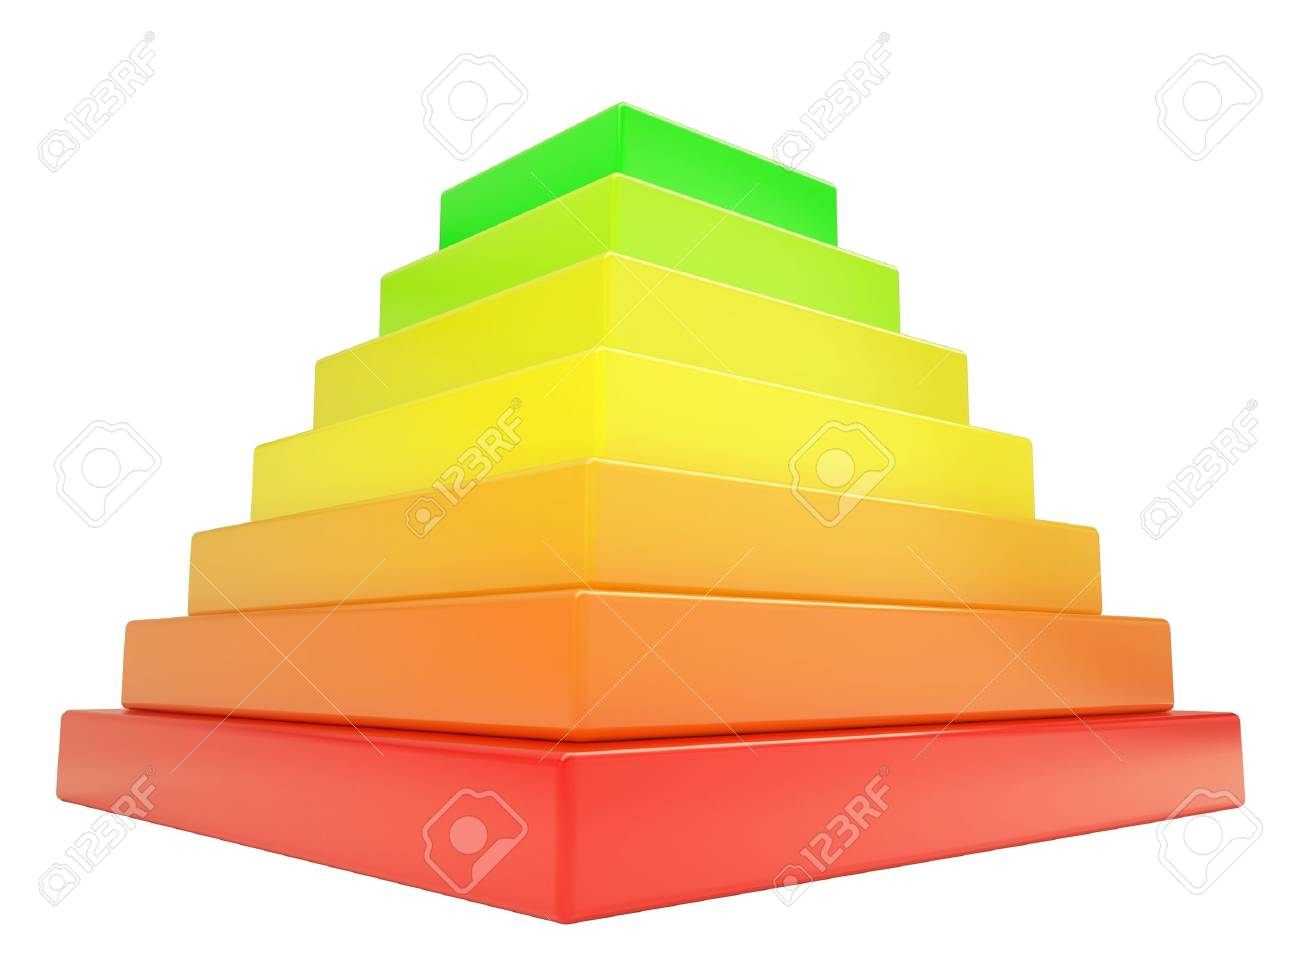 Pyramid of colored cubes. Isolated render on a white background Stock Photo - 17188055